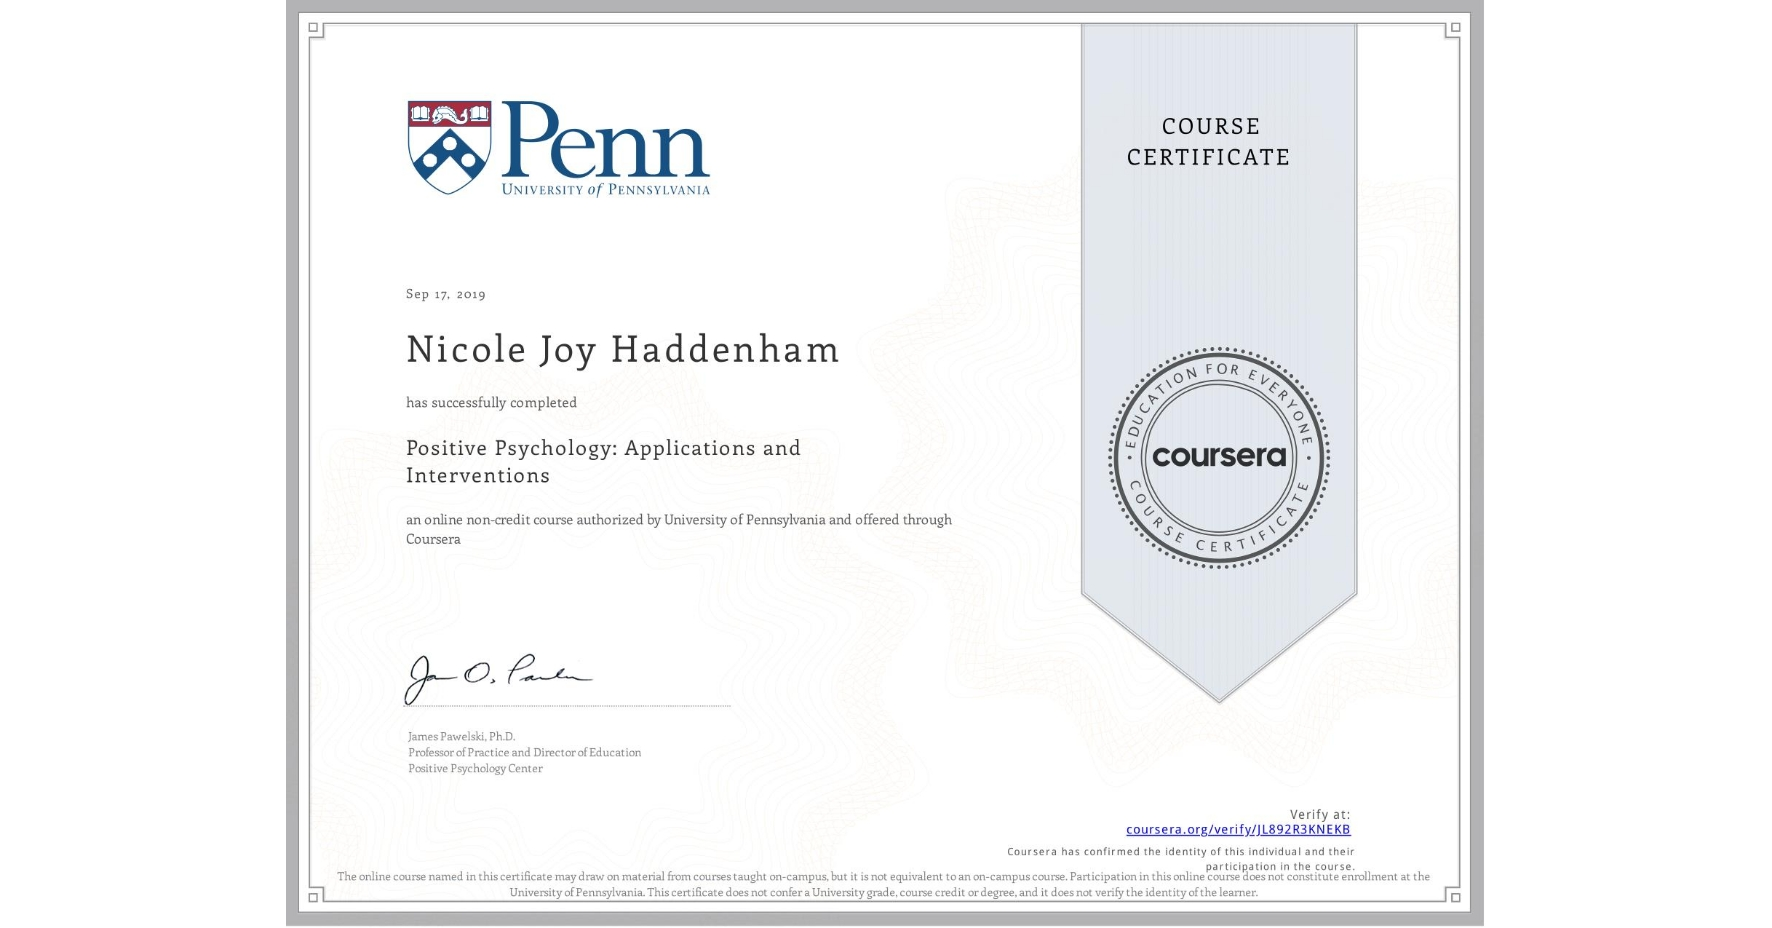 View certificate for Nicole Joy Haddenham, Positive Psychology: Applications and Interventions, an online non-credit course authorized by University of Pennsylvania and offered through Coursera